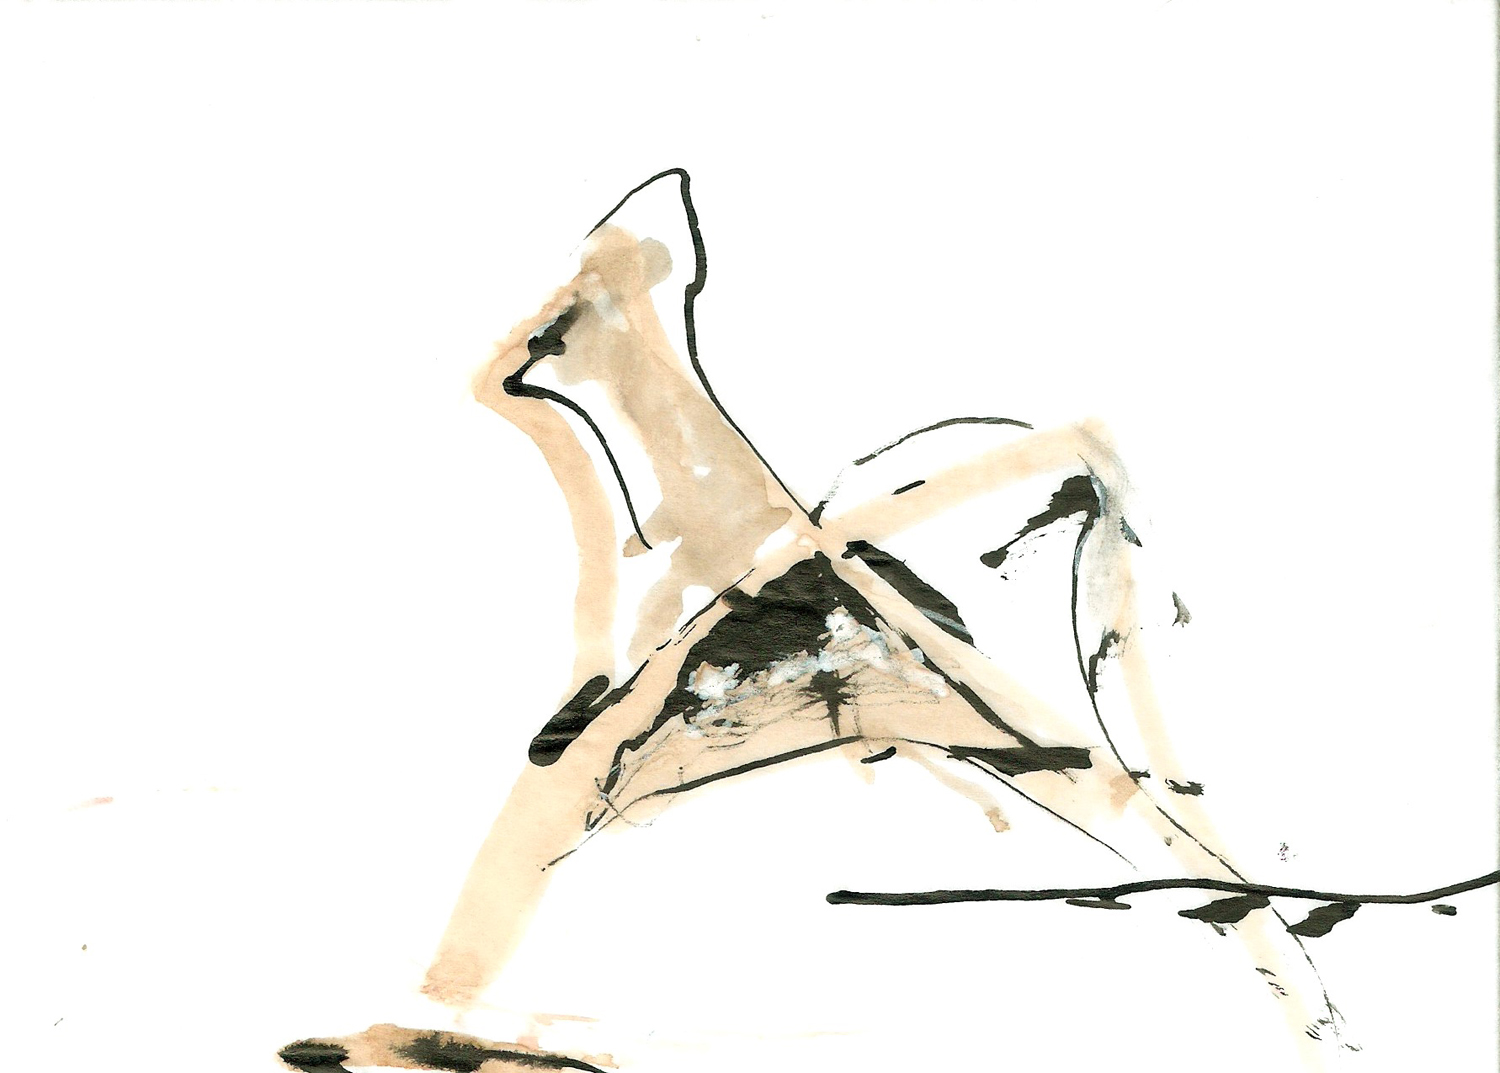 Striding, ink on paper, 6x4, 2012